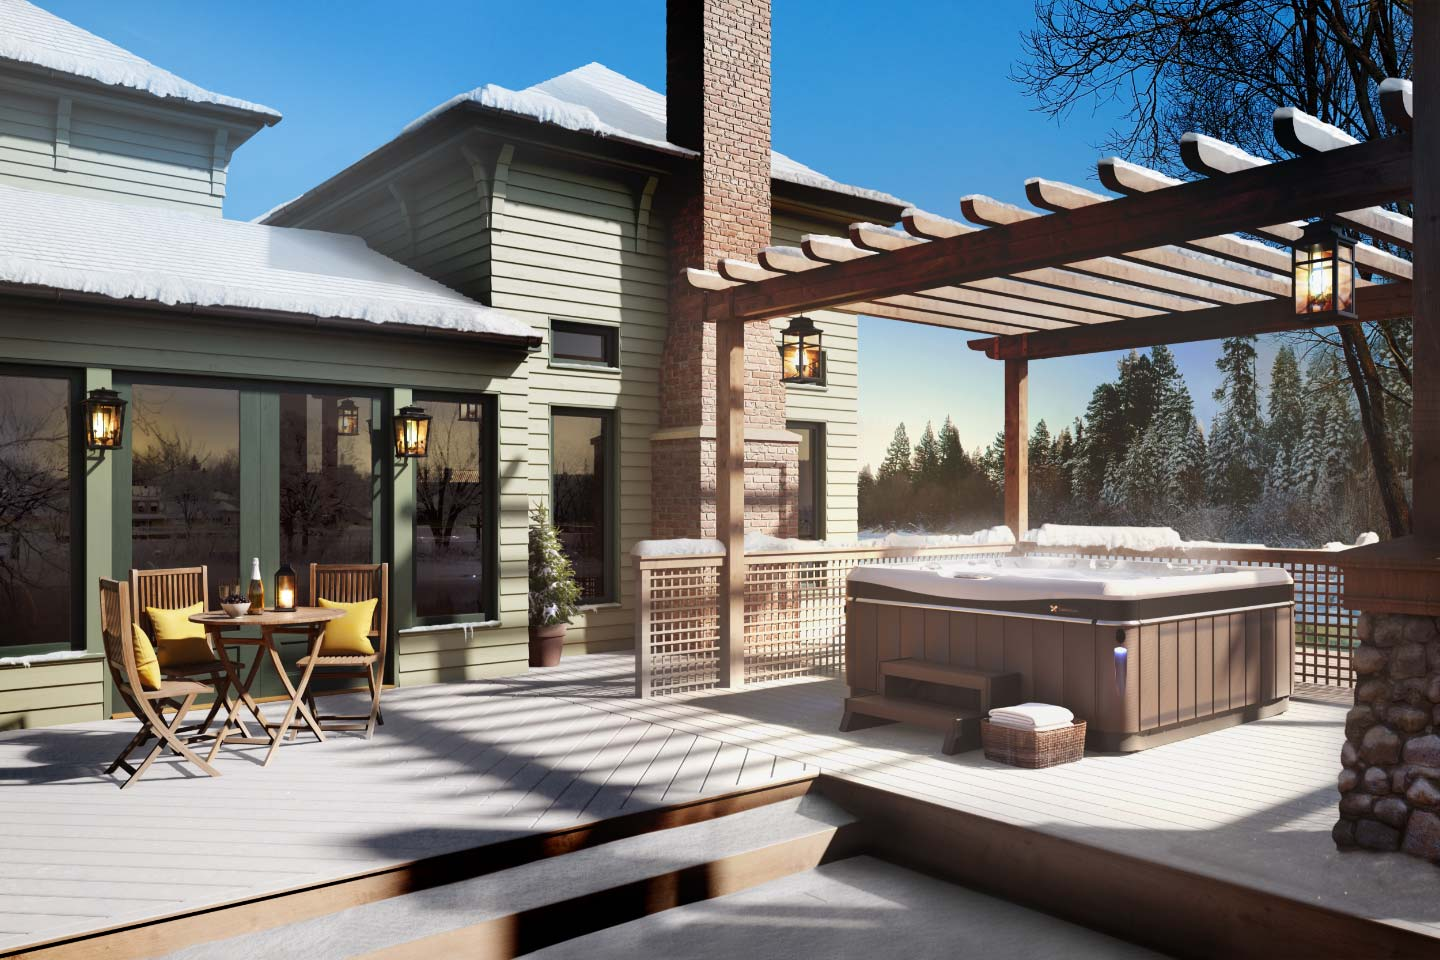 Hot Tub Placement Planning And Site Prepartion Tips Mainely Tubs 2020